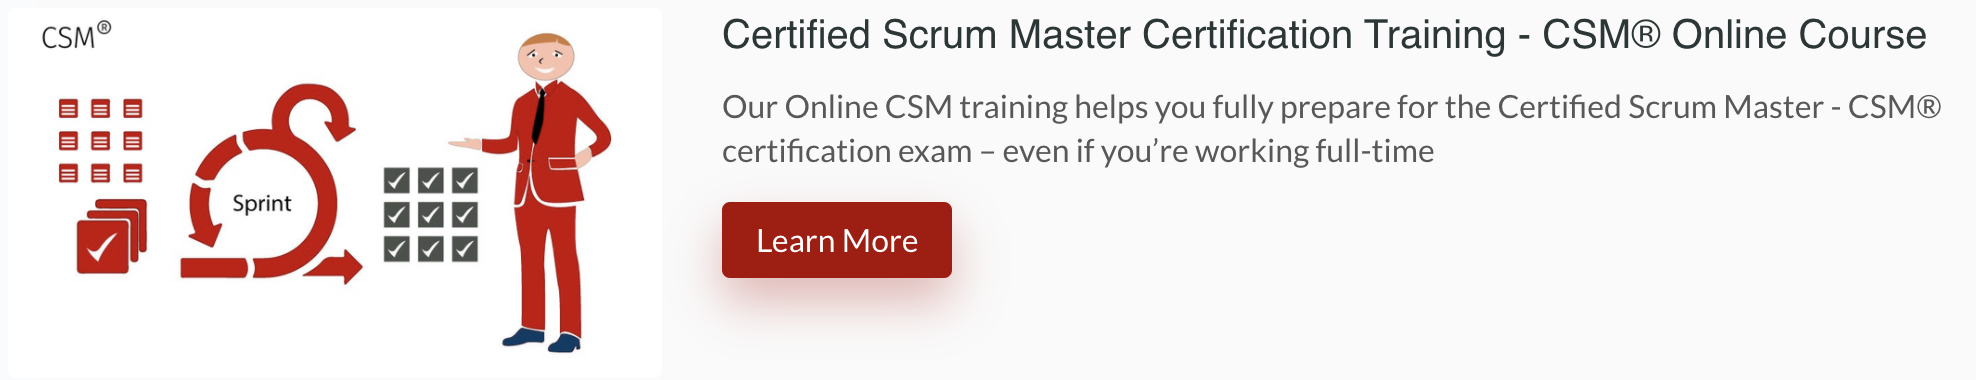 Screen-Shot-2020-07-21-at-16.54.11 Scrum Master Certification Online - Incl. 100% FREE Course Links